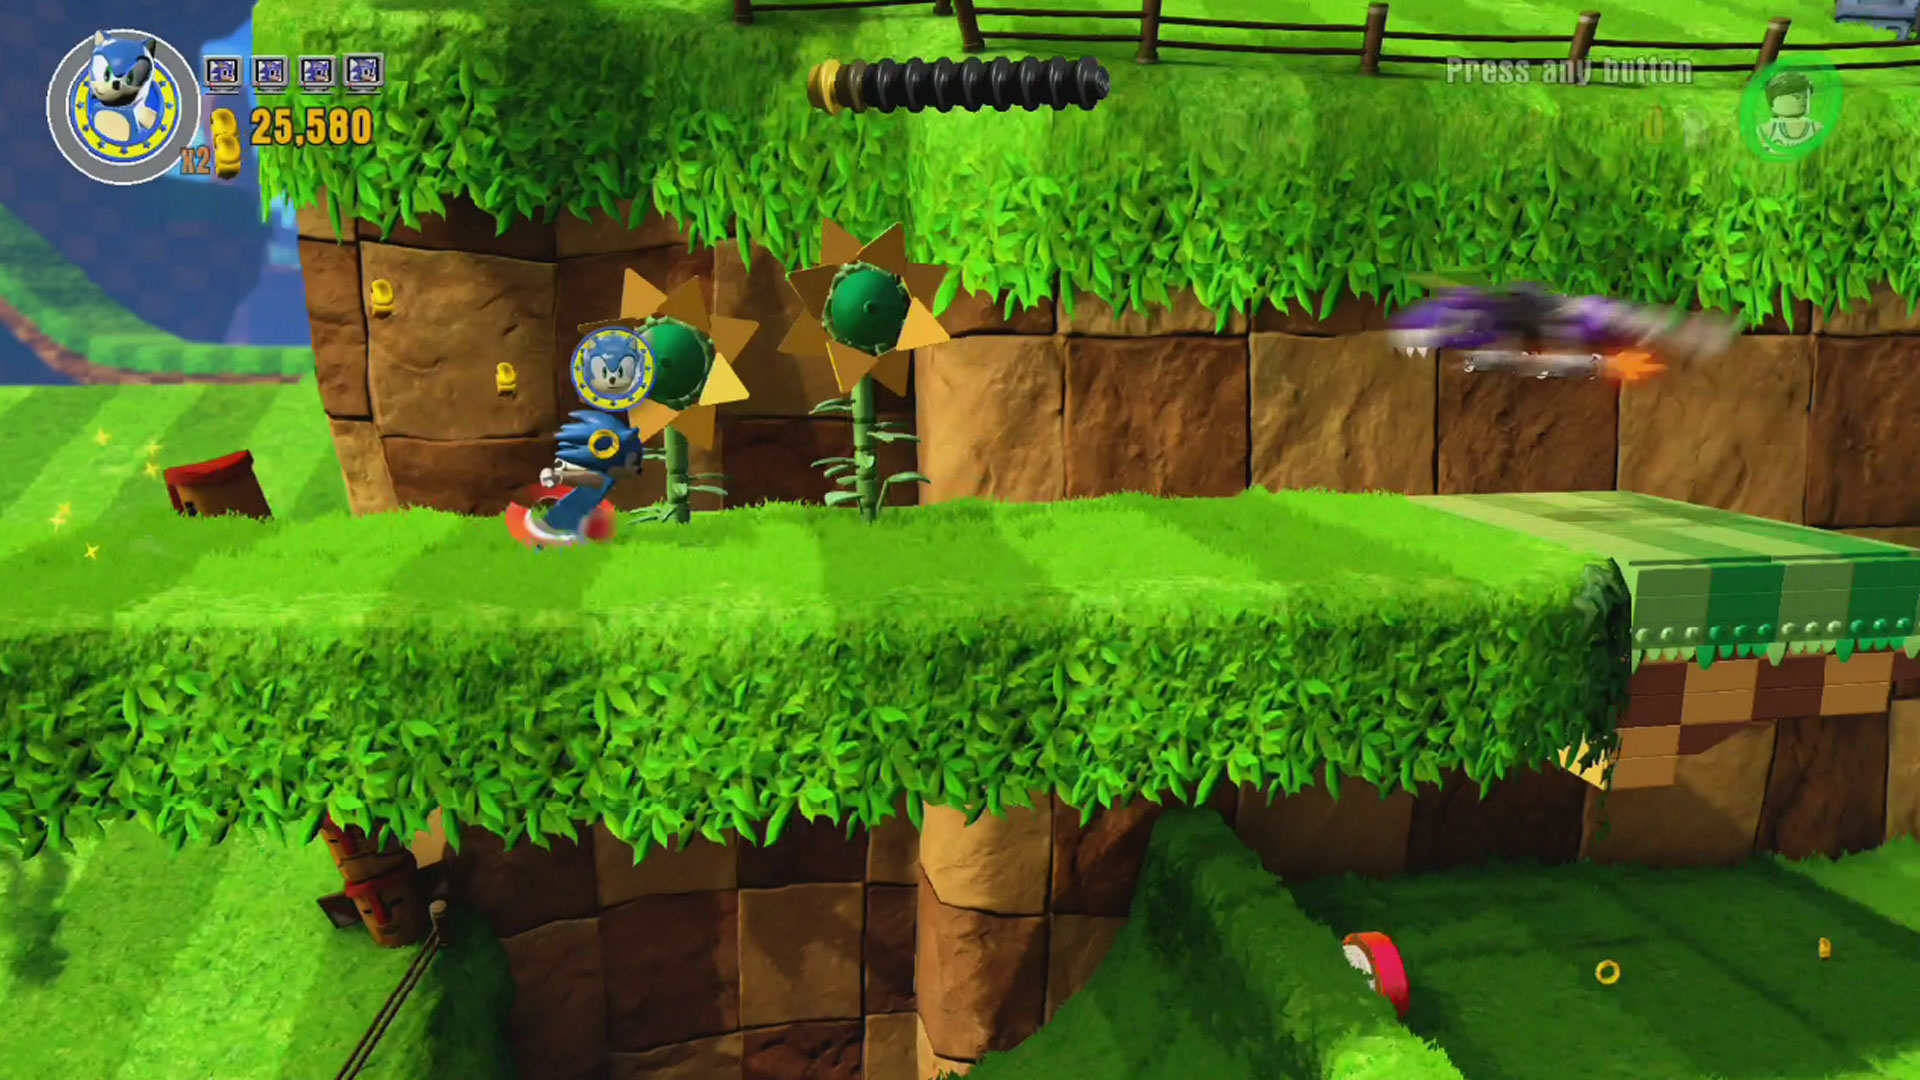 Lego Dimensions Sonic The Hedgehog Level Pack Review Gamerheadquarters